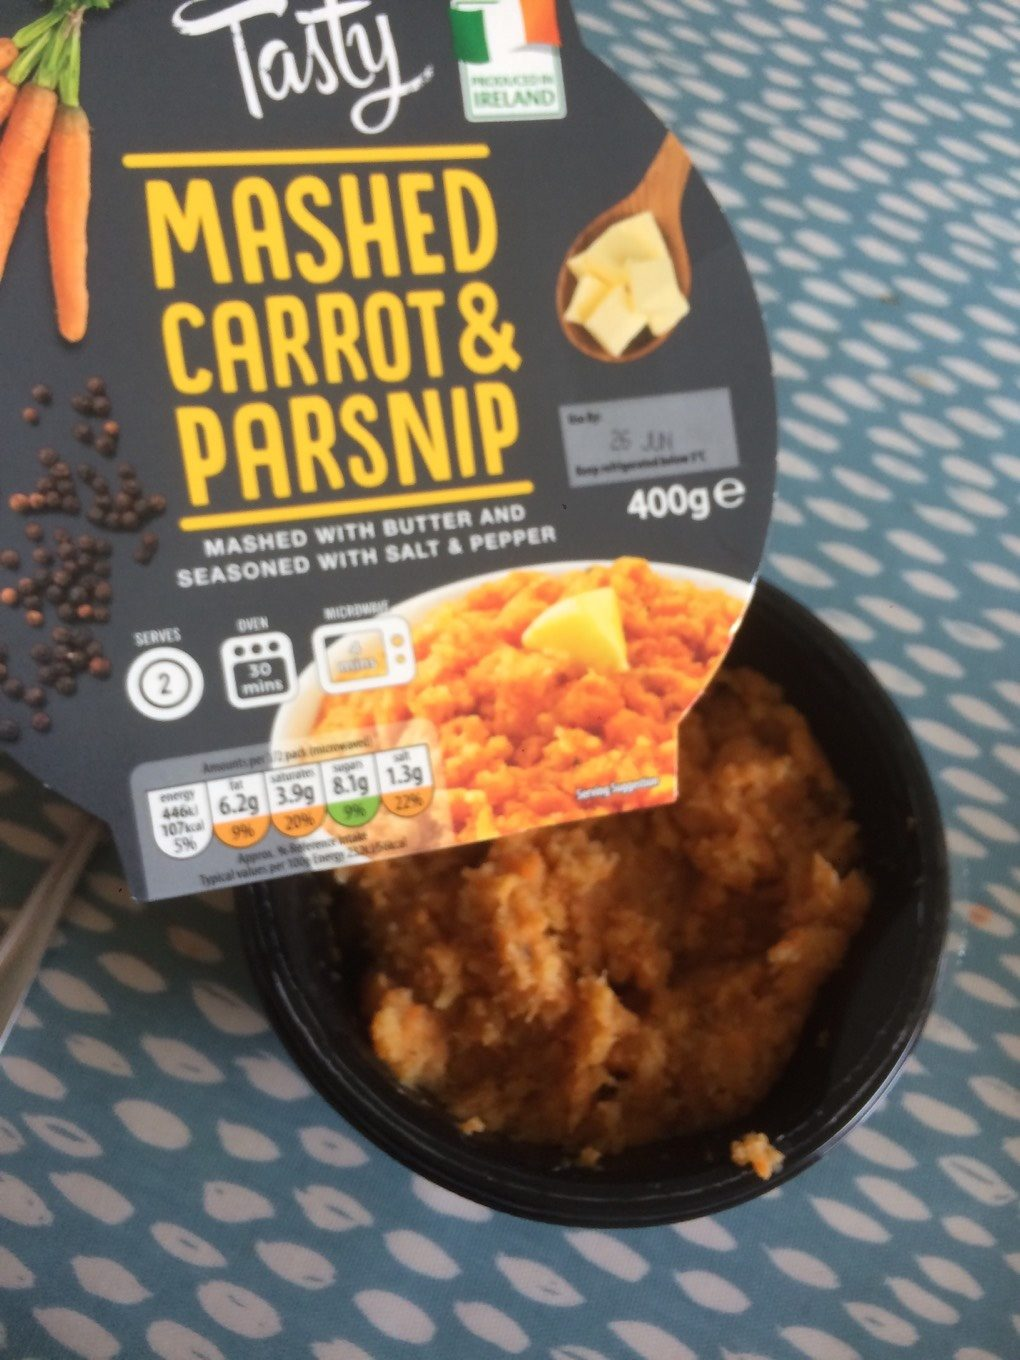 Mashed Carrot & Parsnip - Product